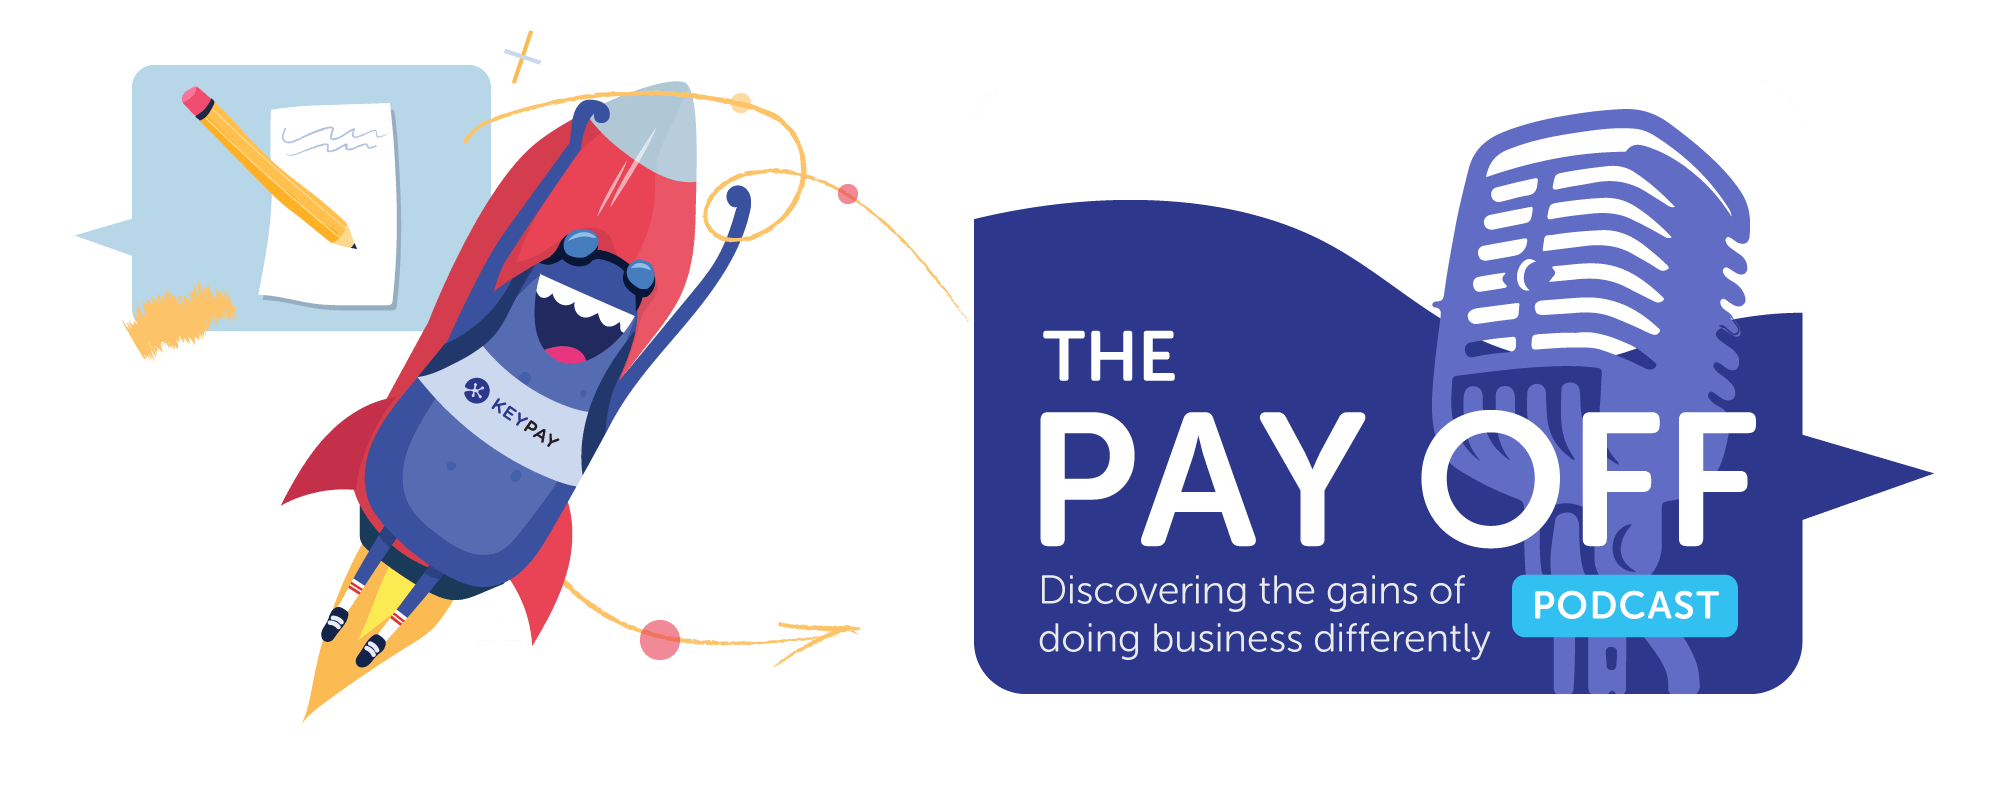 KeyPay's Pay Off podcast - Discovering the gains of doing business differently